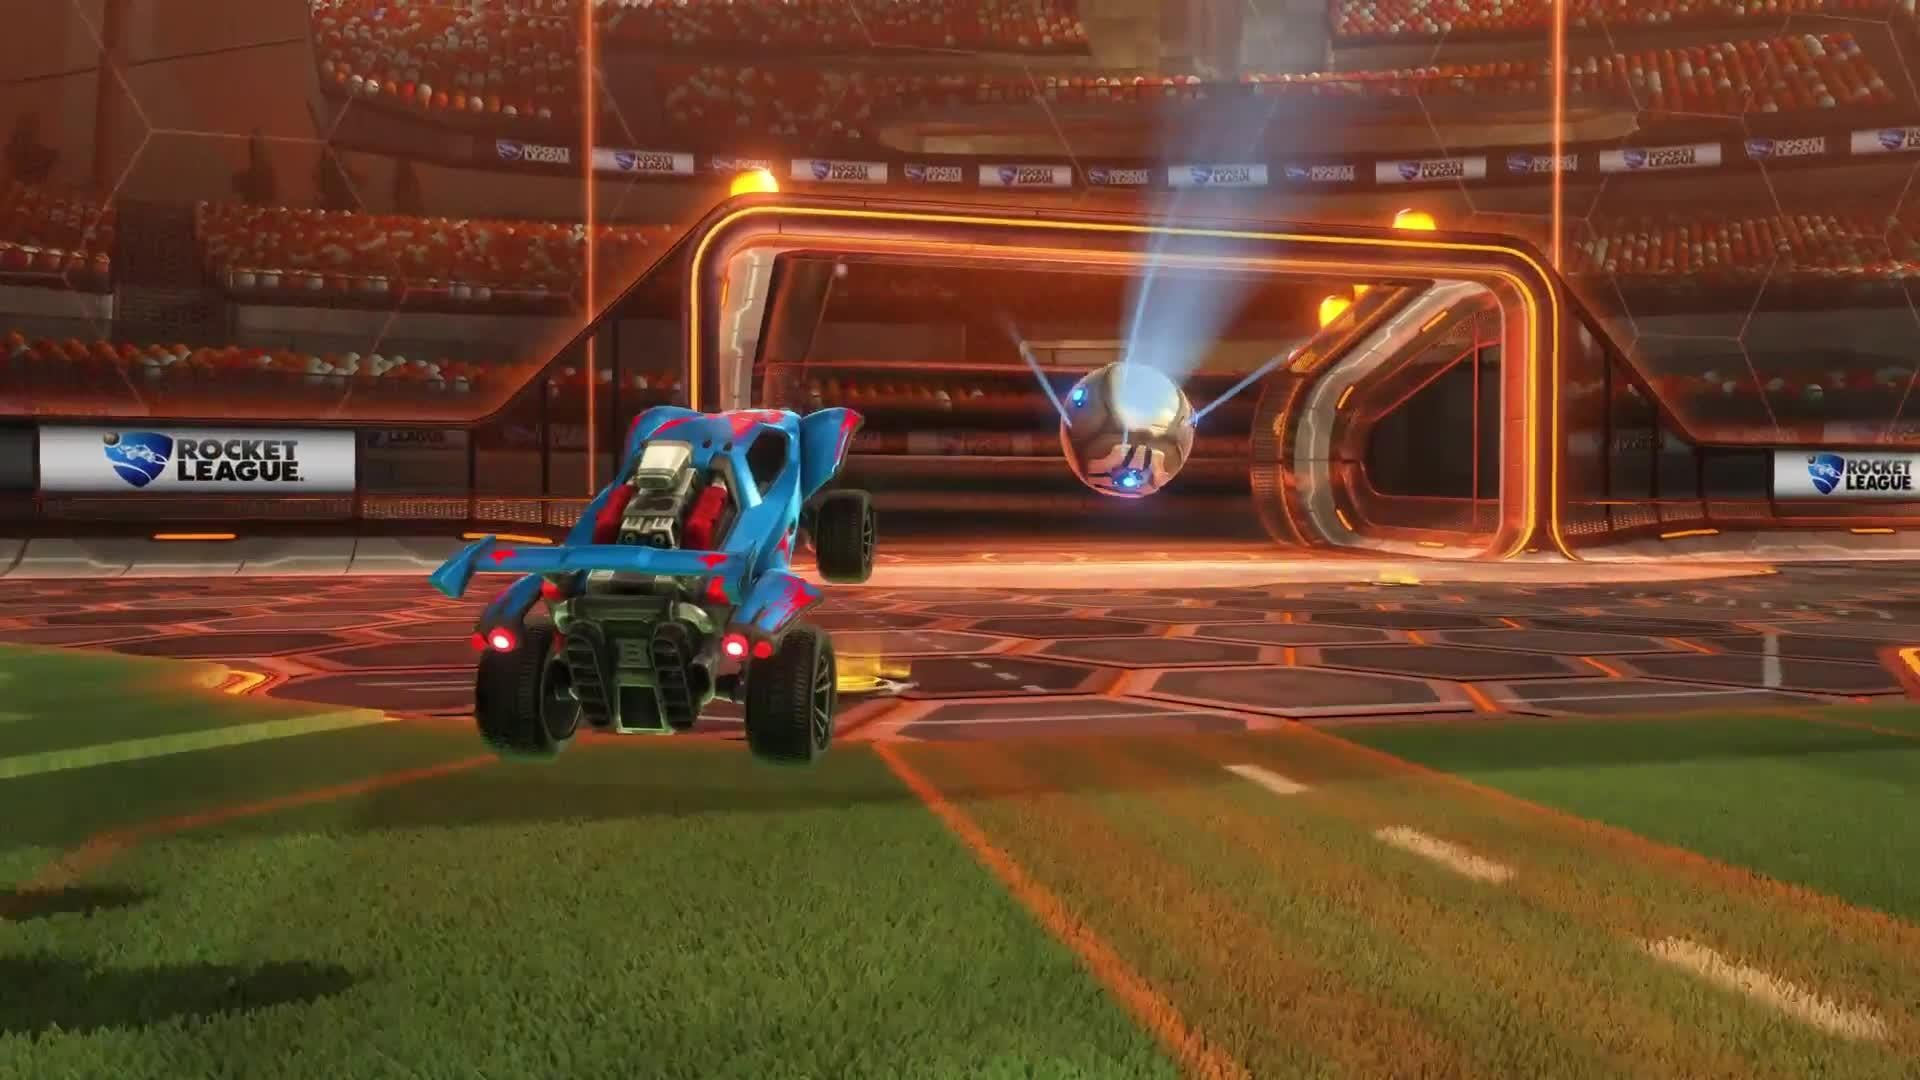 Rocket League - Nintendo Switch Trailer screen capture